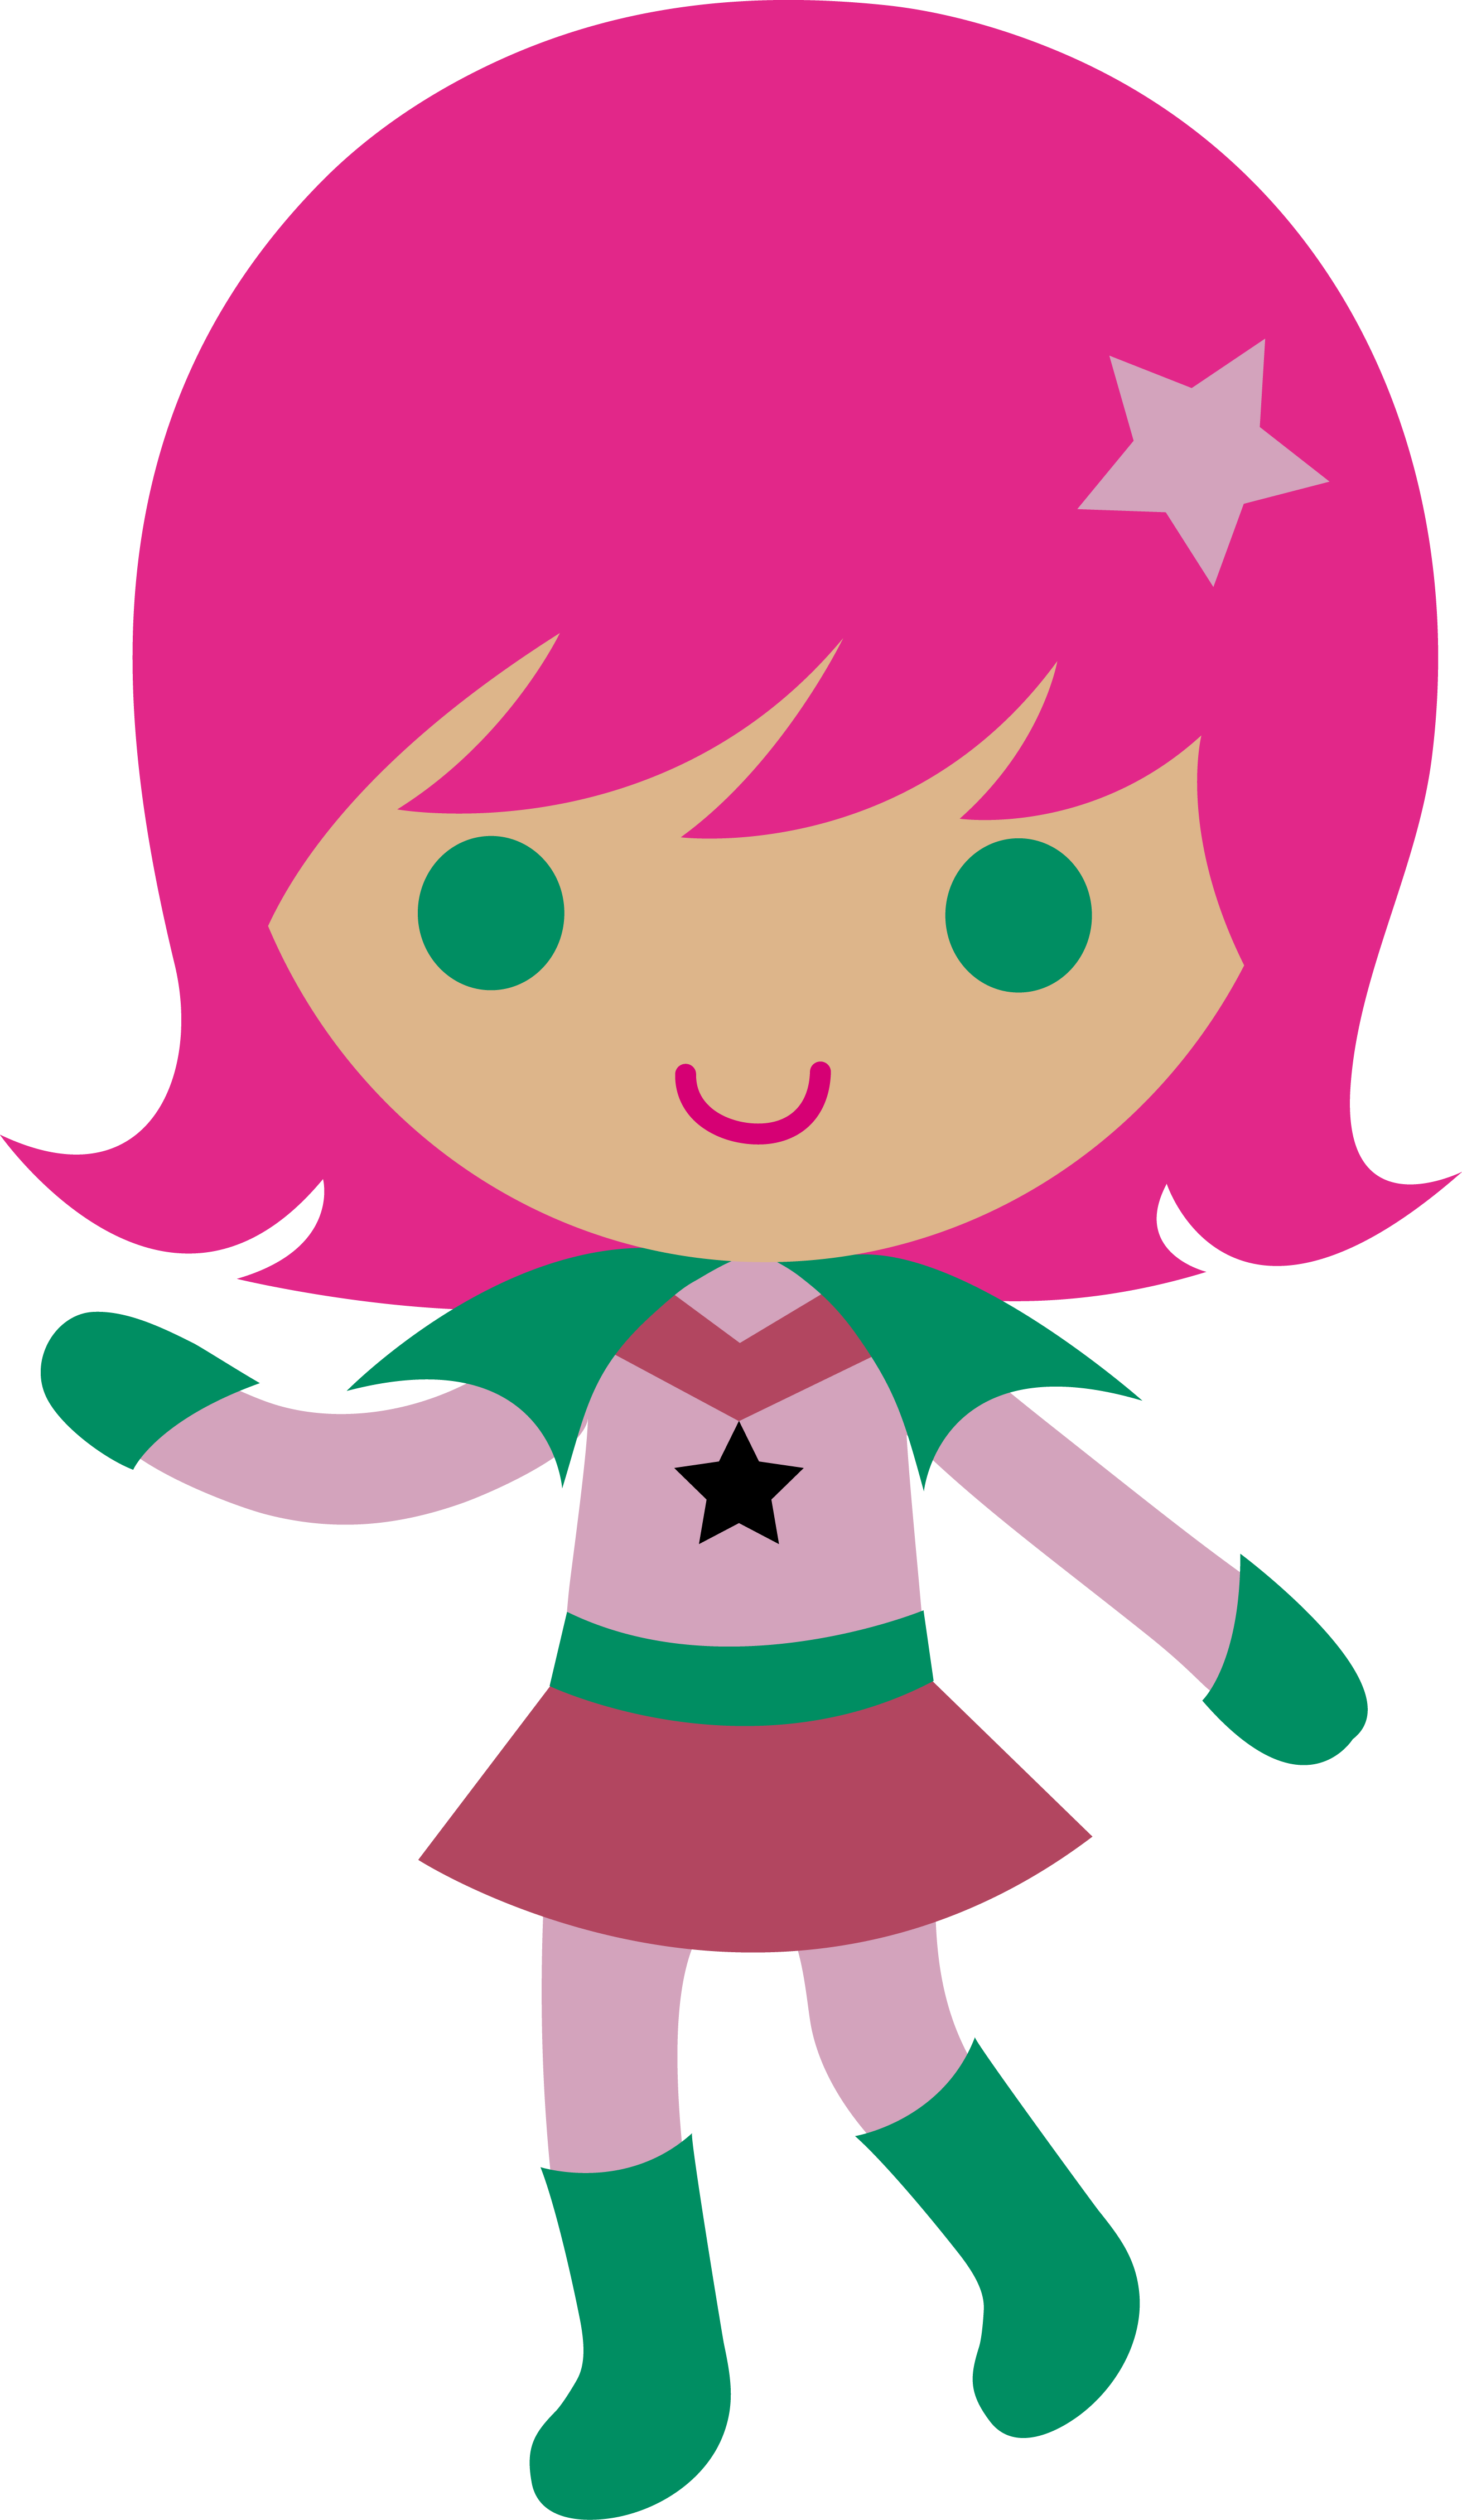 Space Cadet Girl With Pink Hair - Free Clip Art